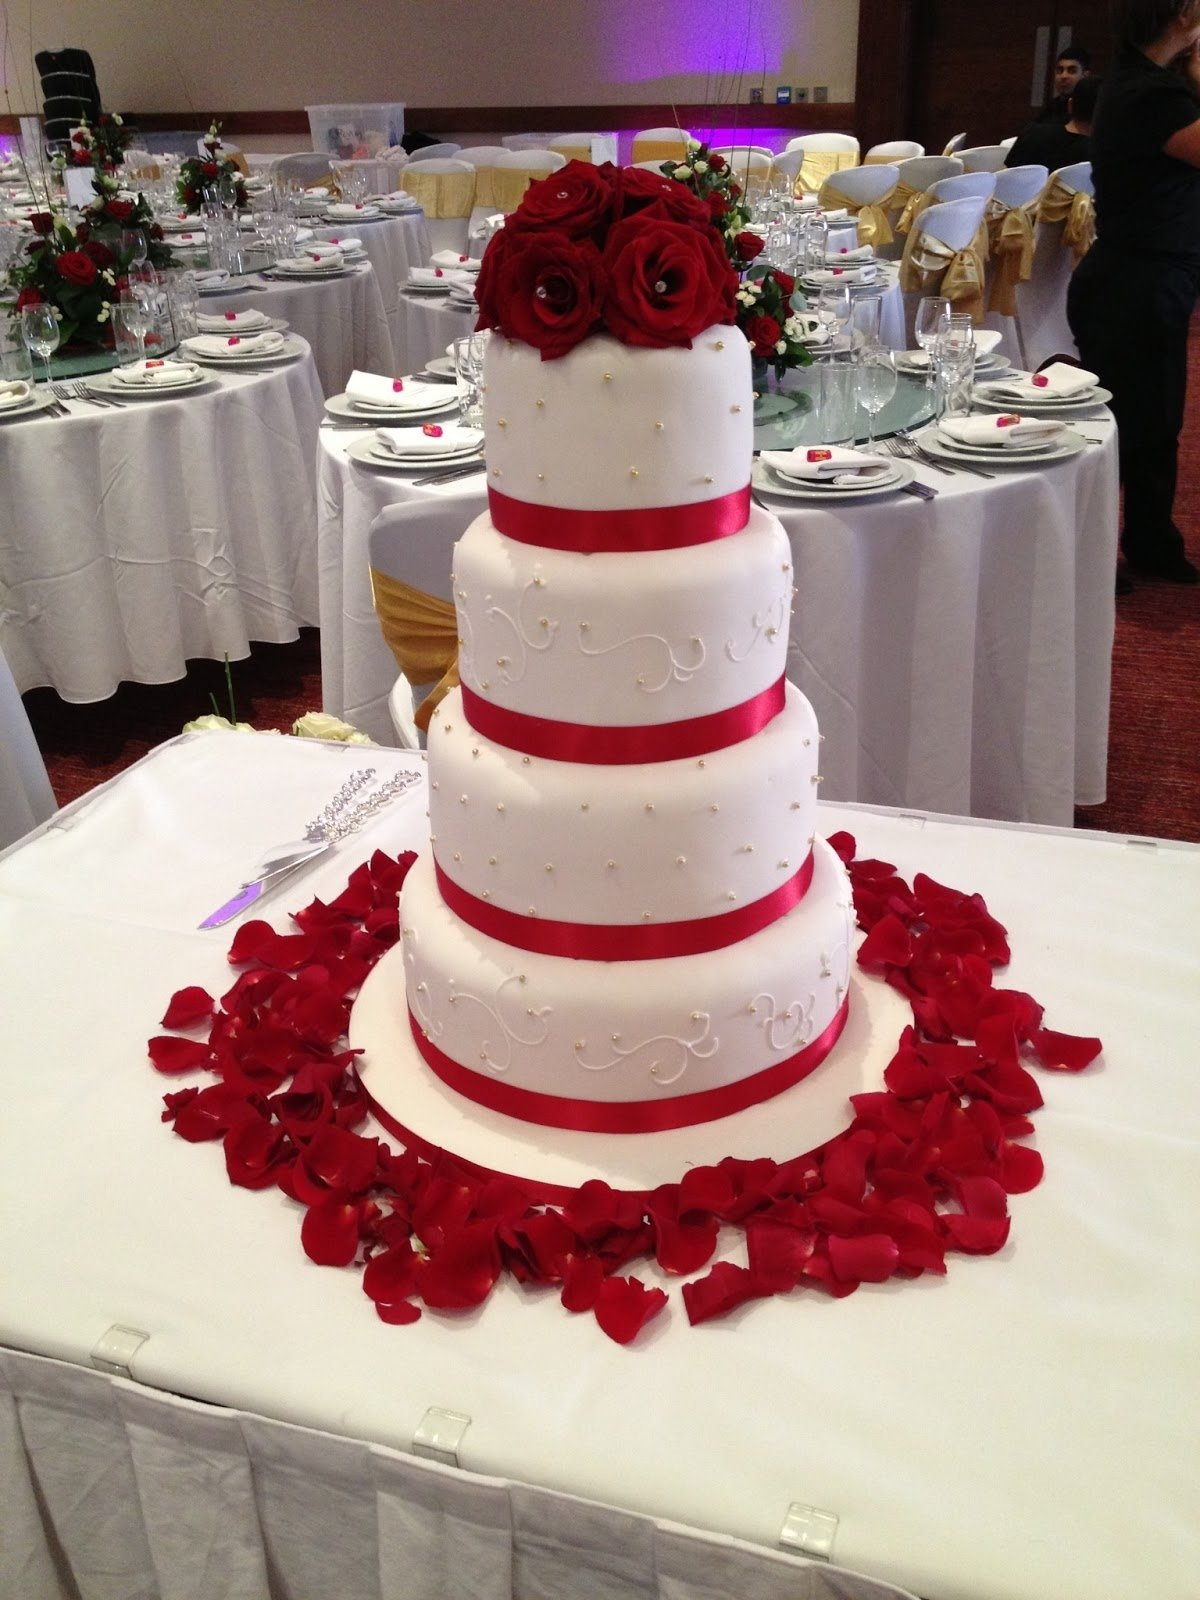 10 Spectacular Red And White Wedding Ideas red and white wedding cake ideas ideal weddings 2020